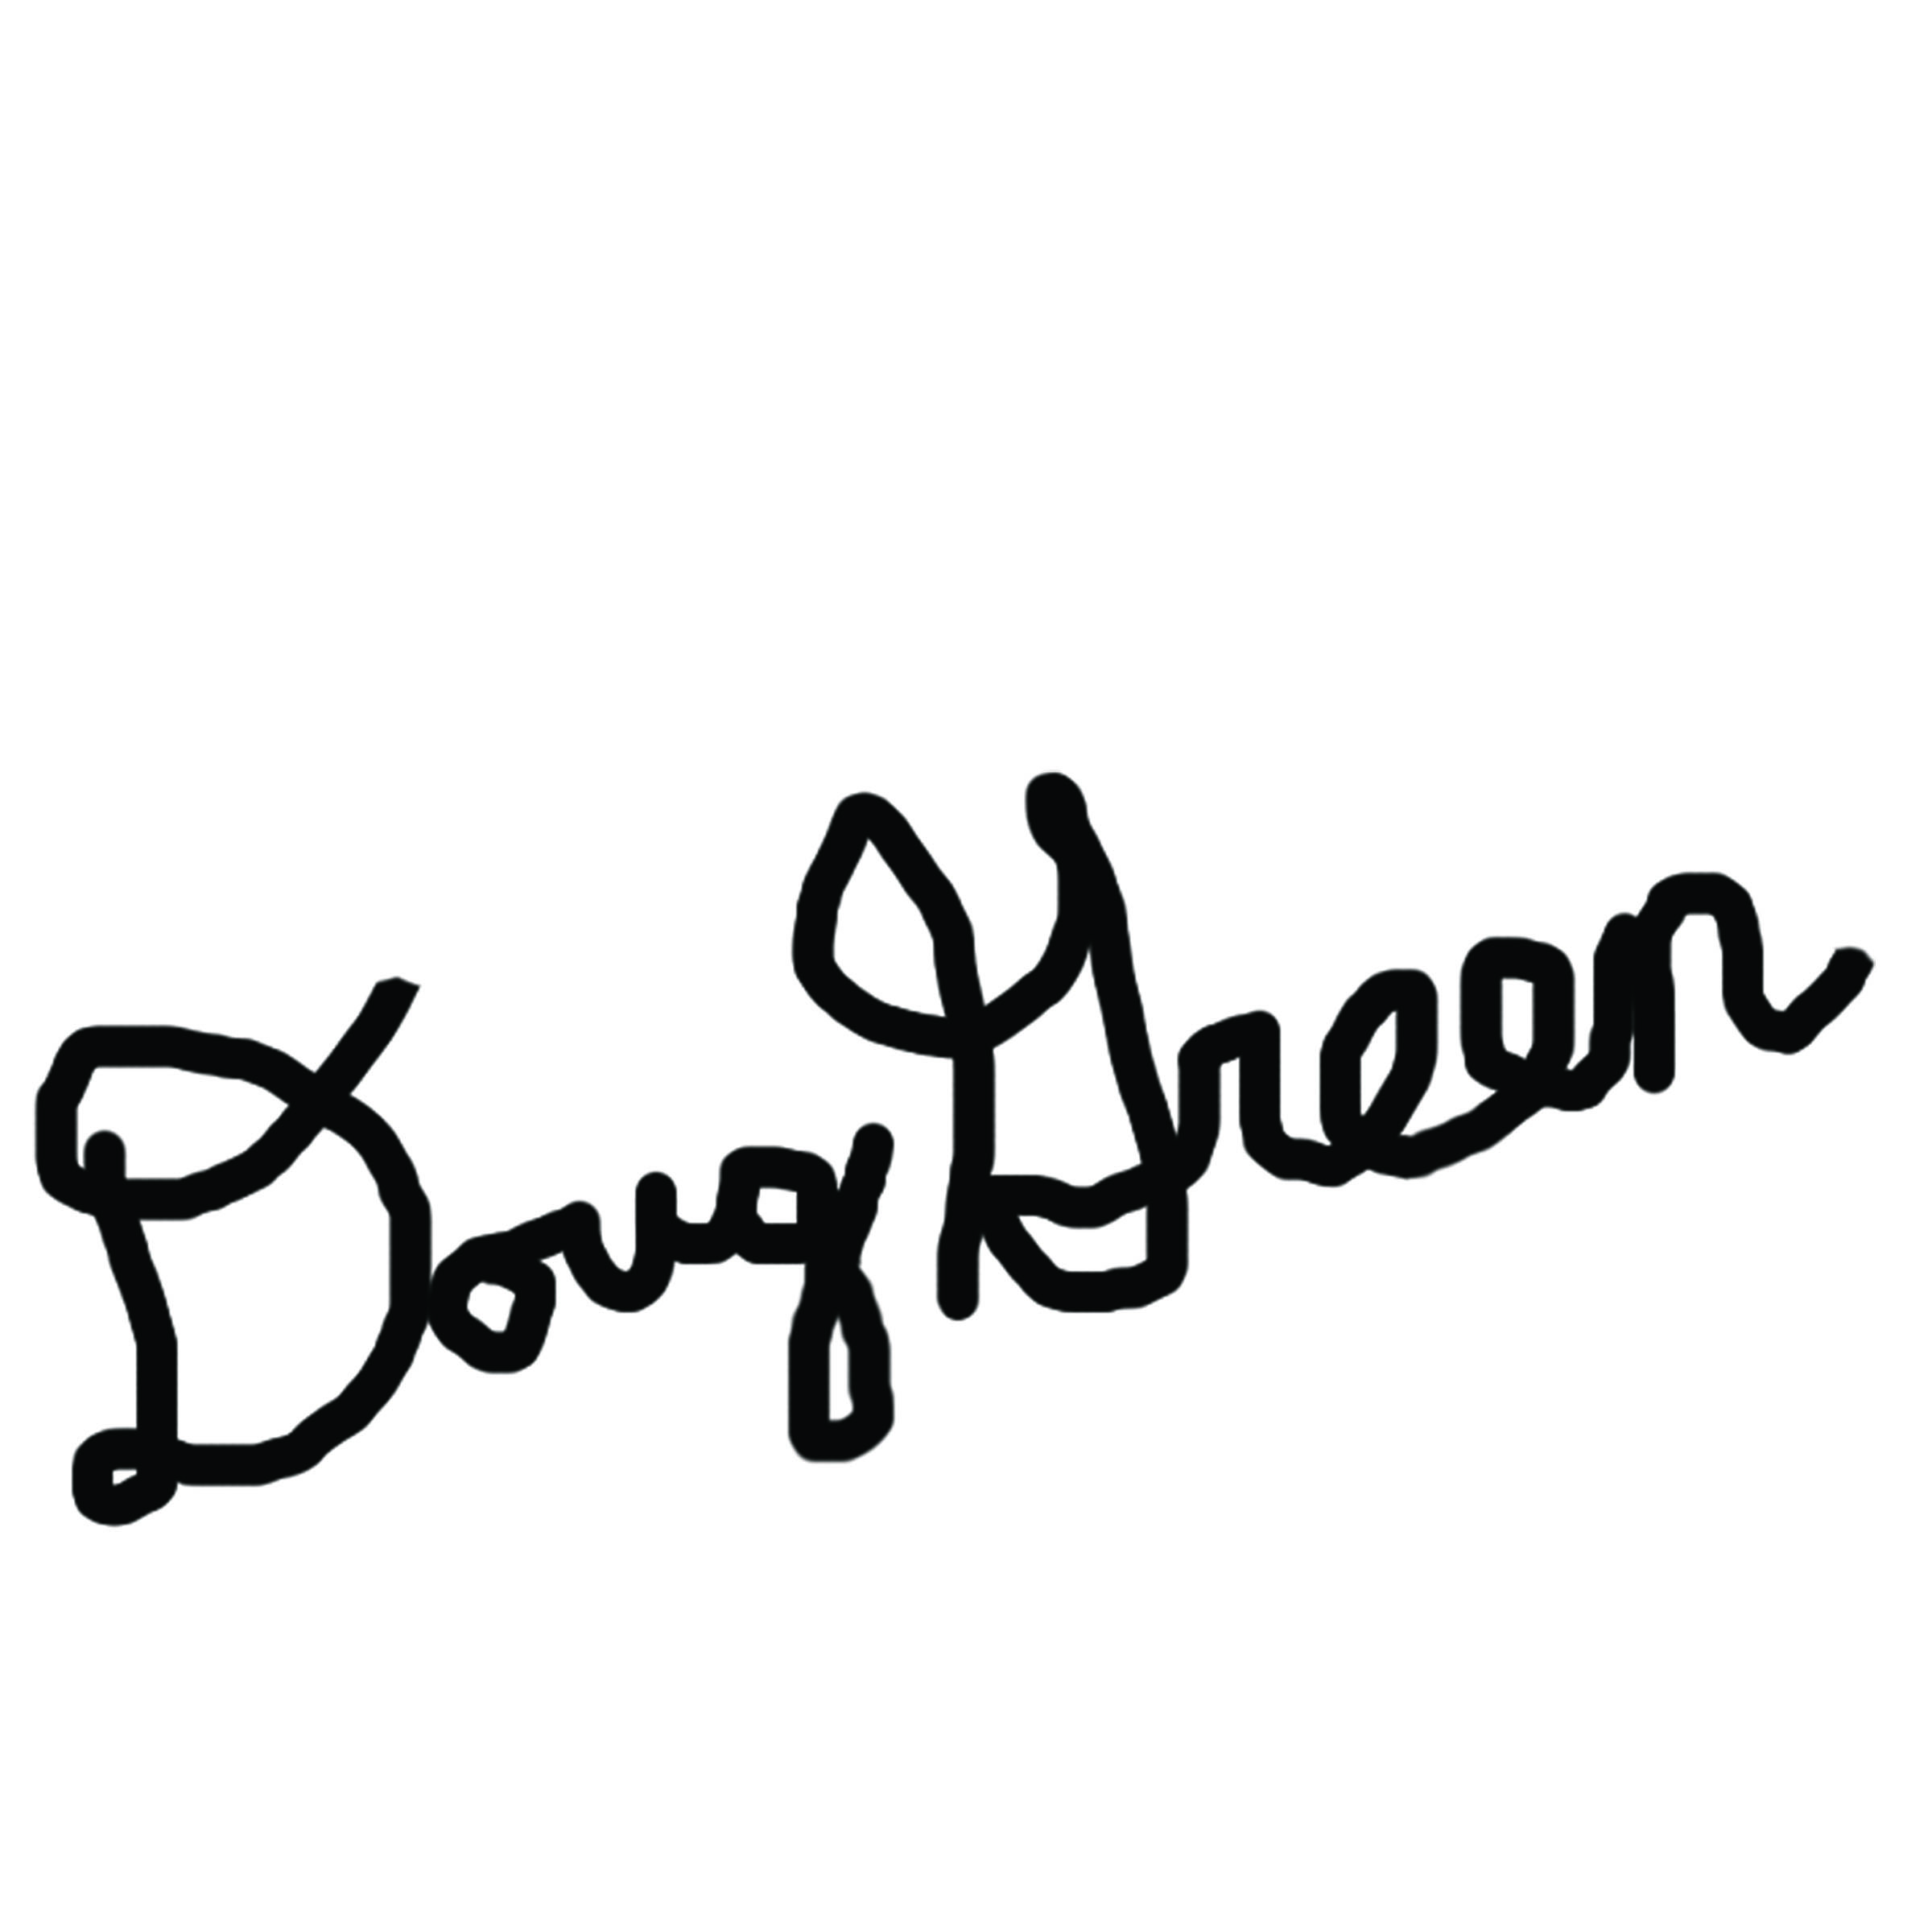 Doug Green's Signature